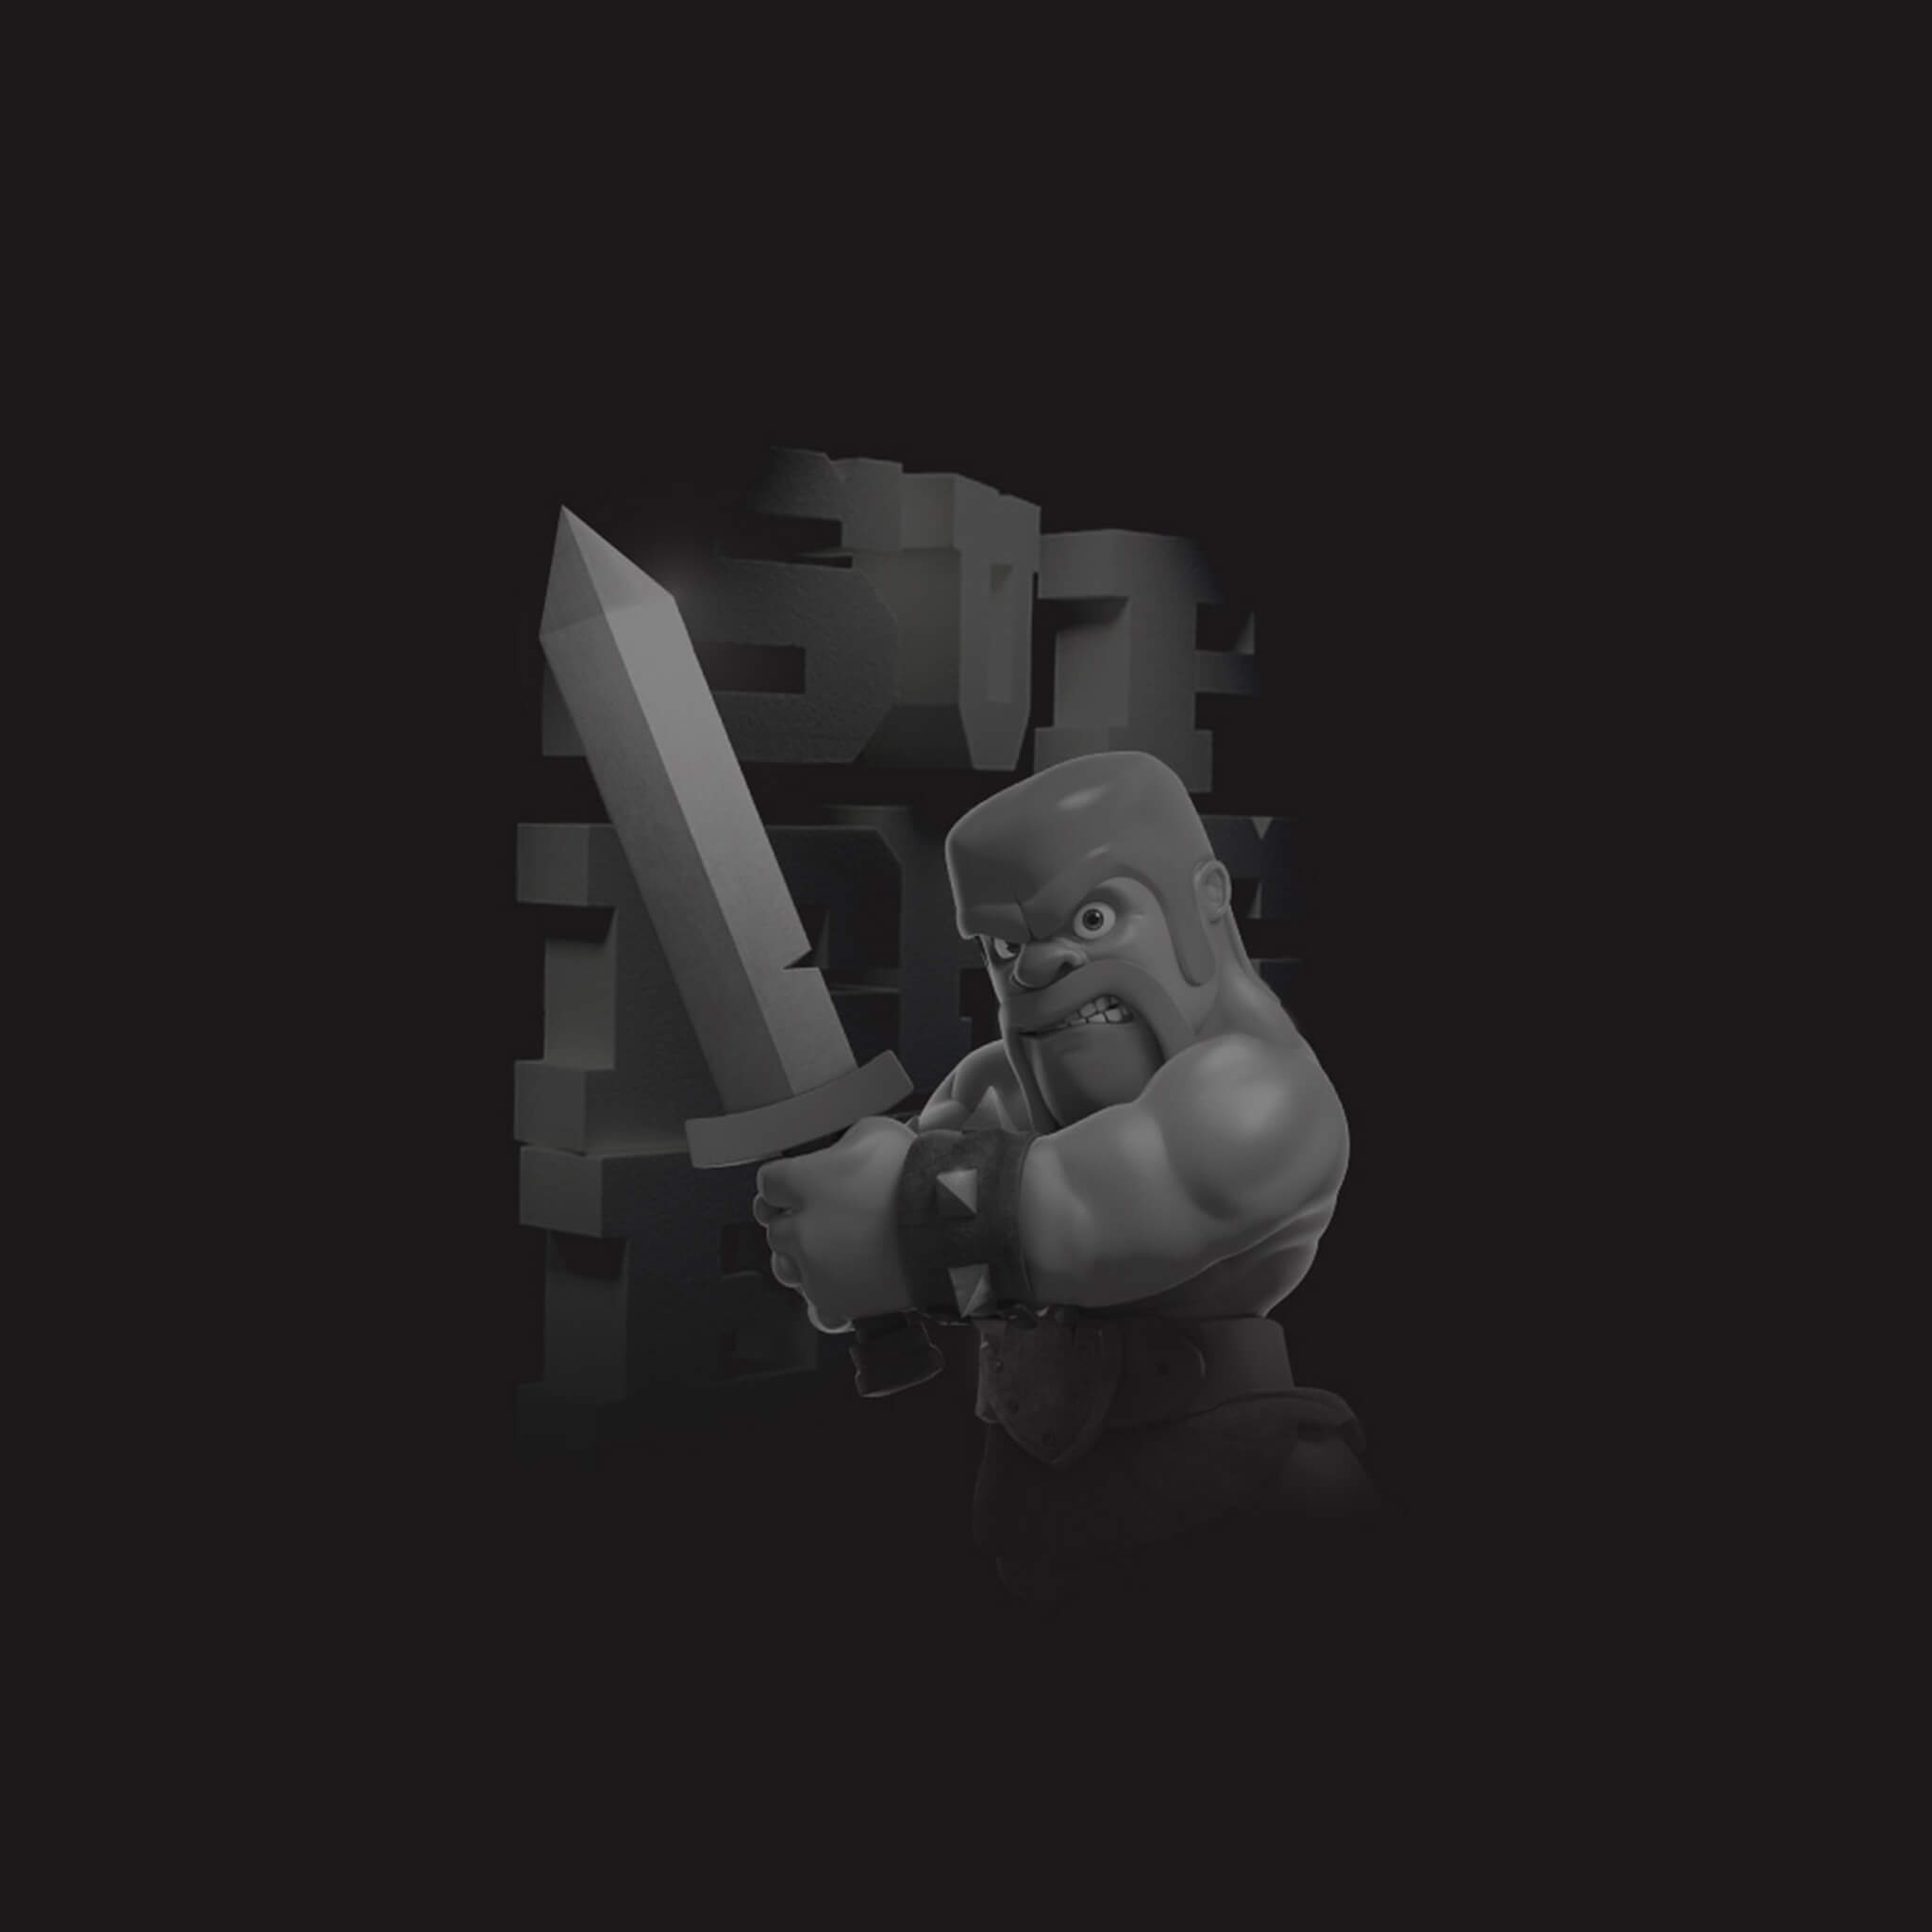 Clash of Clans Black and White Wallpaper